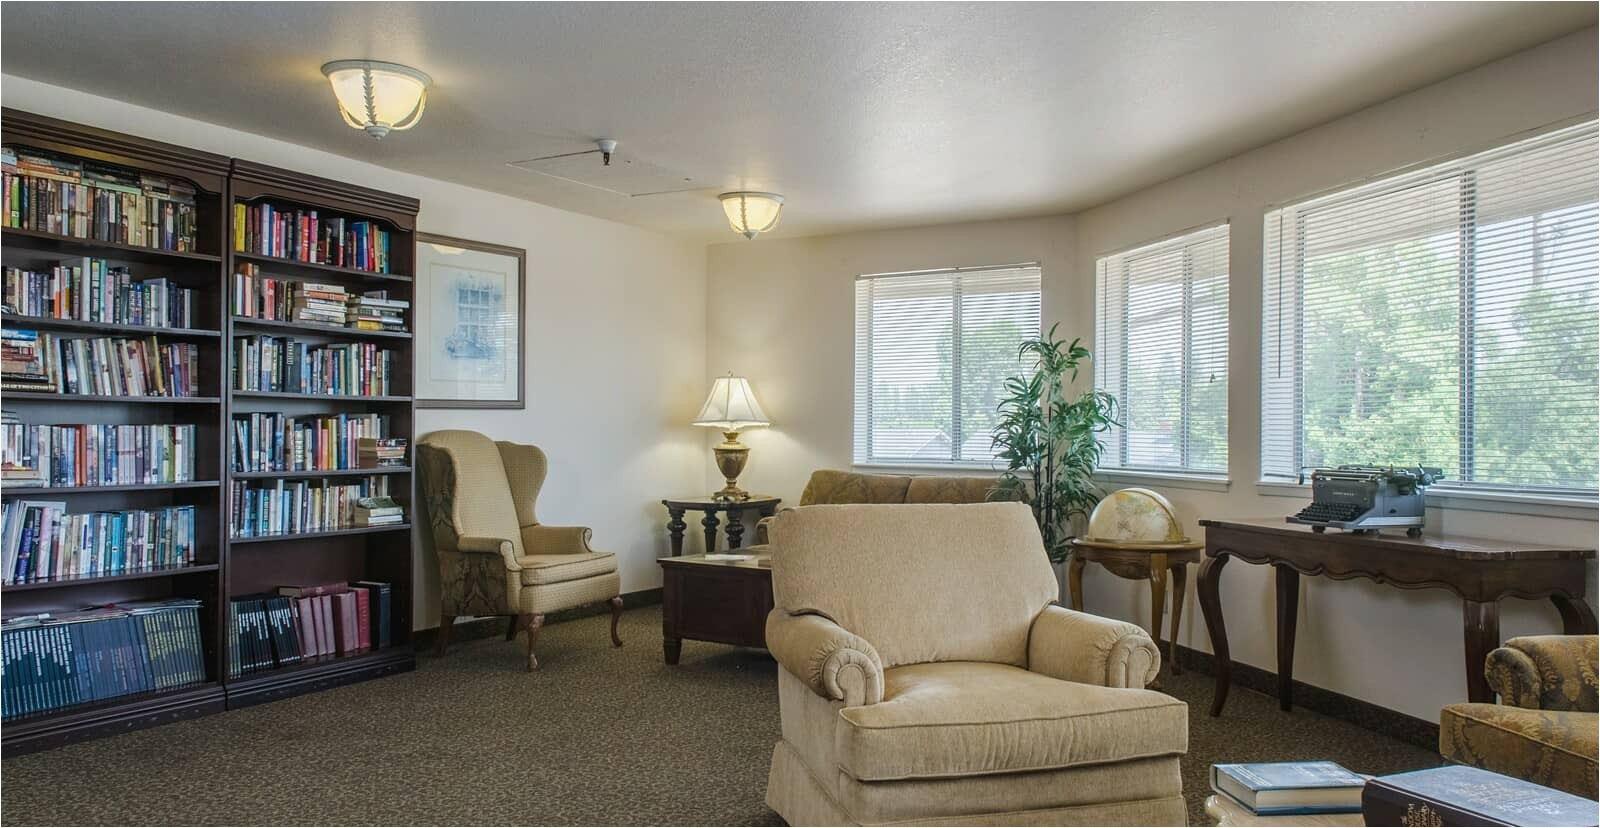 Model Homes Fresno Ca Senior Living Retirement Community In Fresno Ca Fig Garden